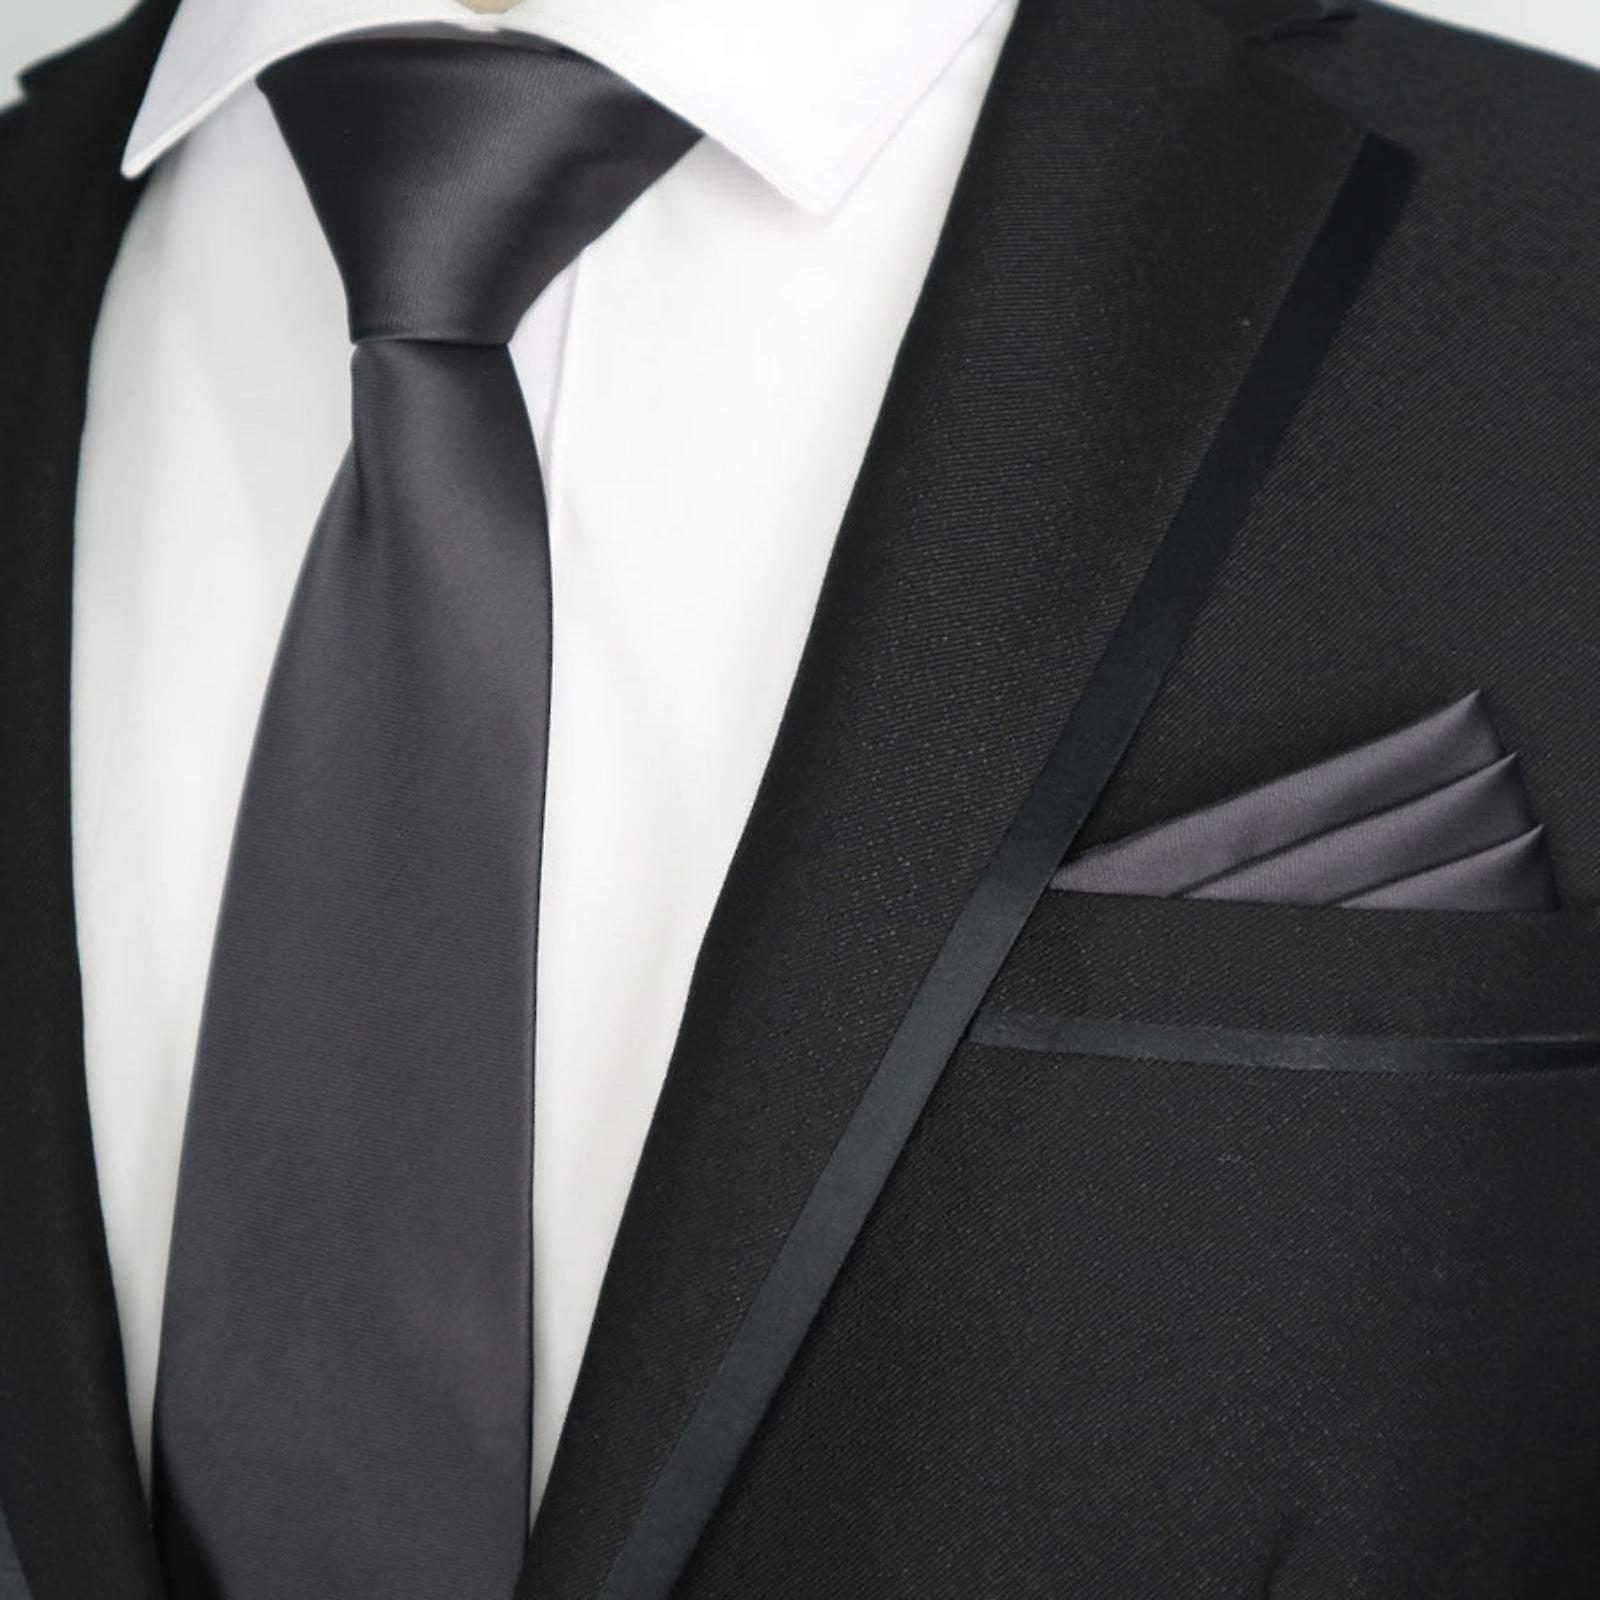 Slate grey solid satin finish slim tie & pocket square